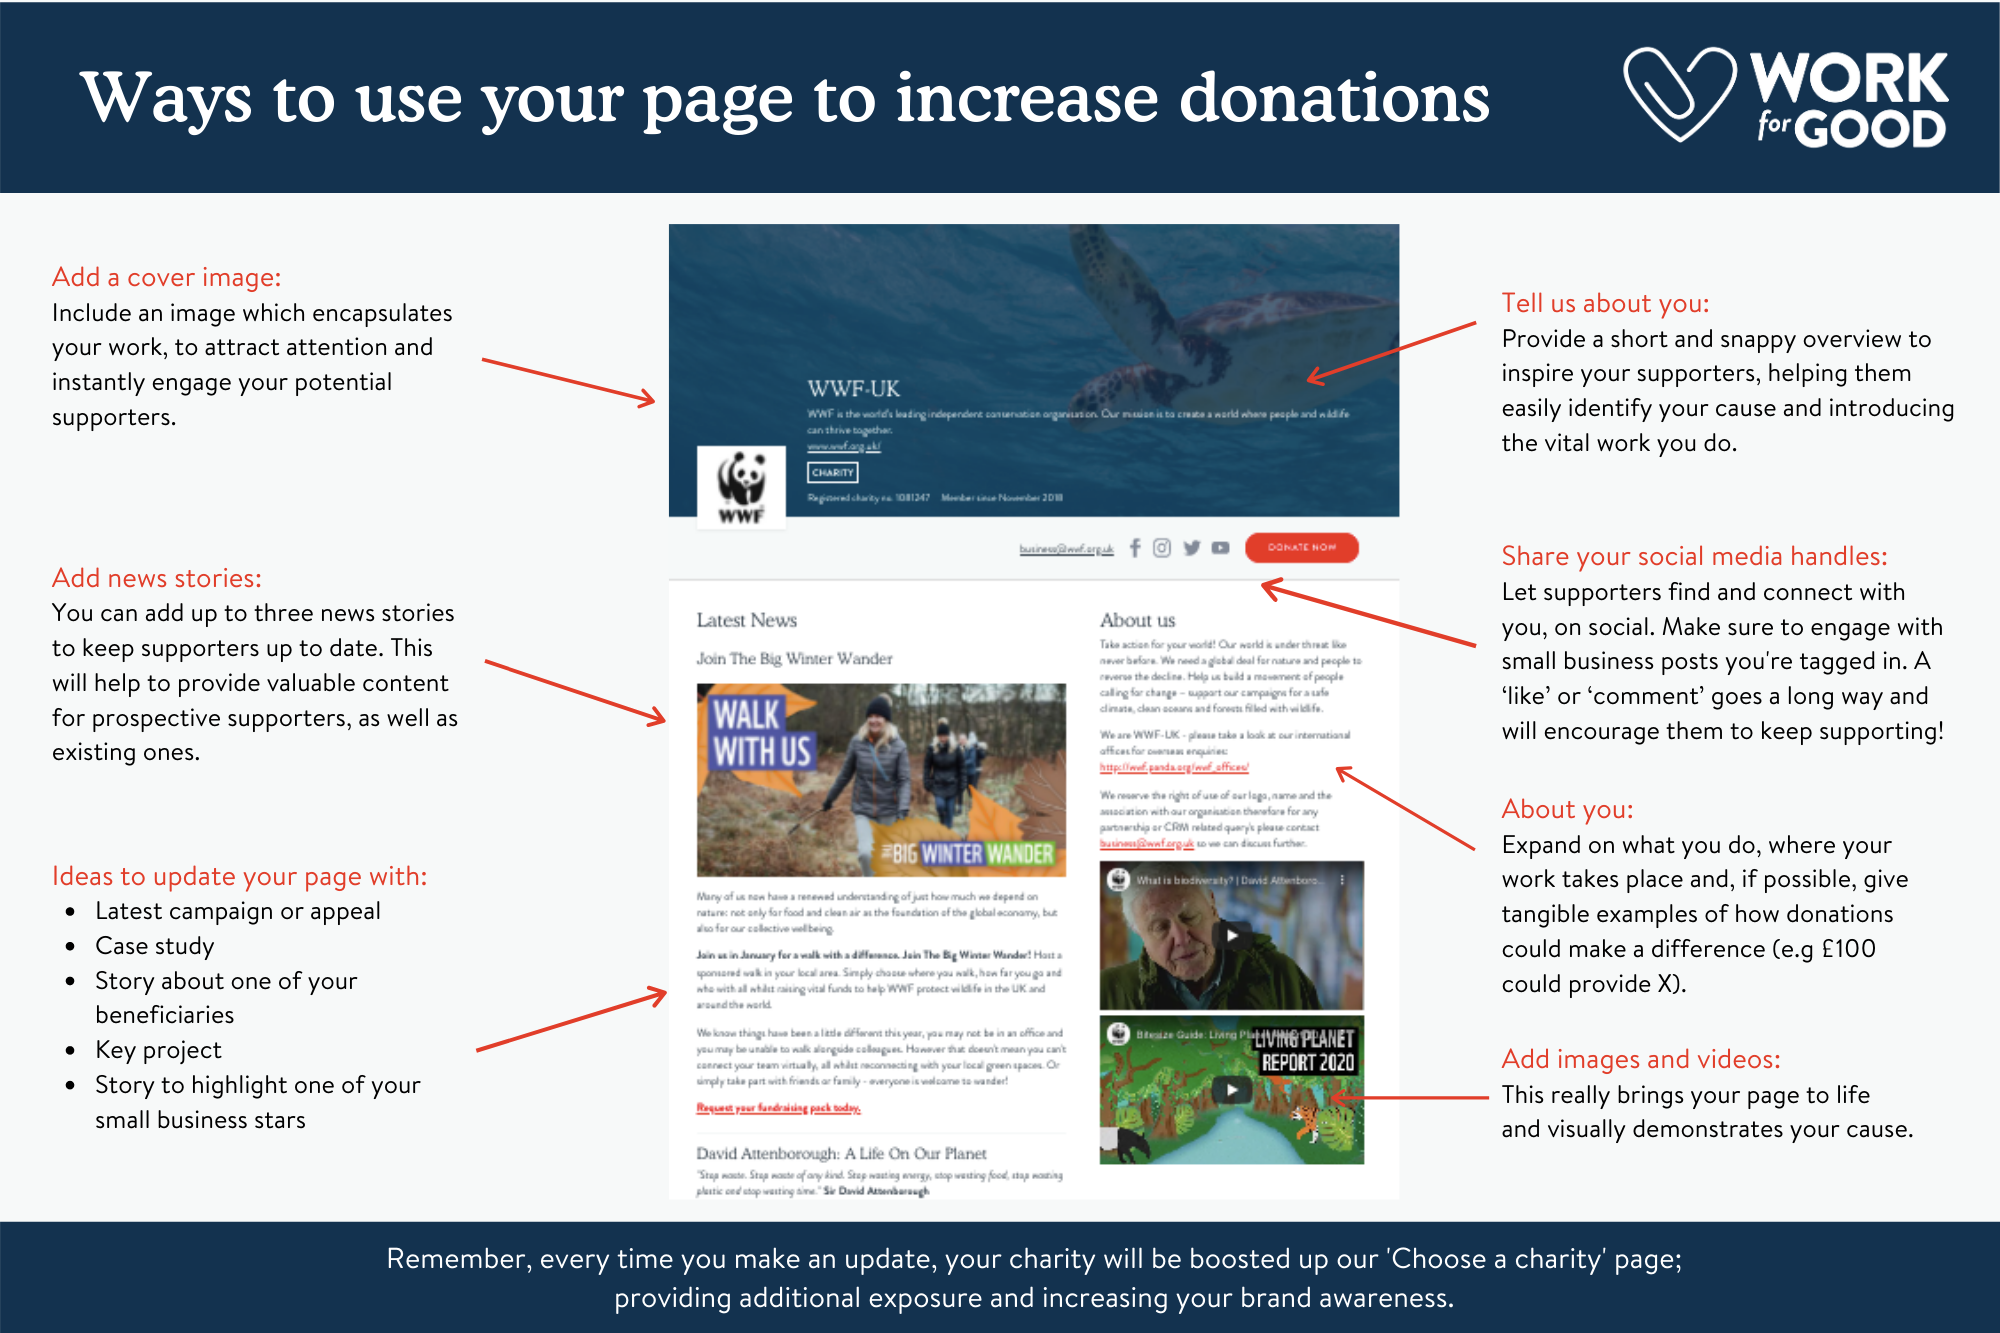 Ways to use your page